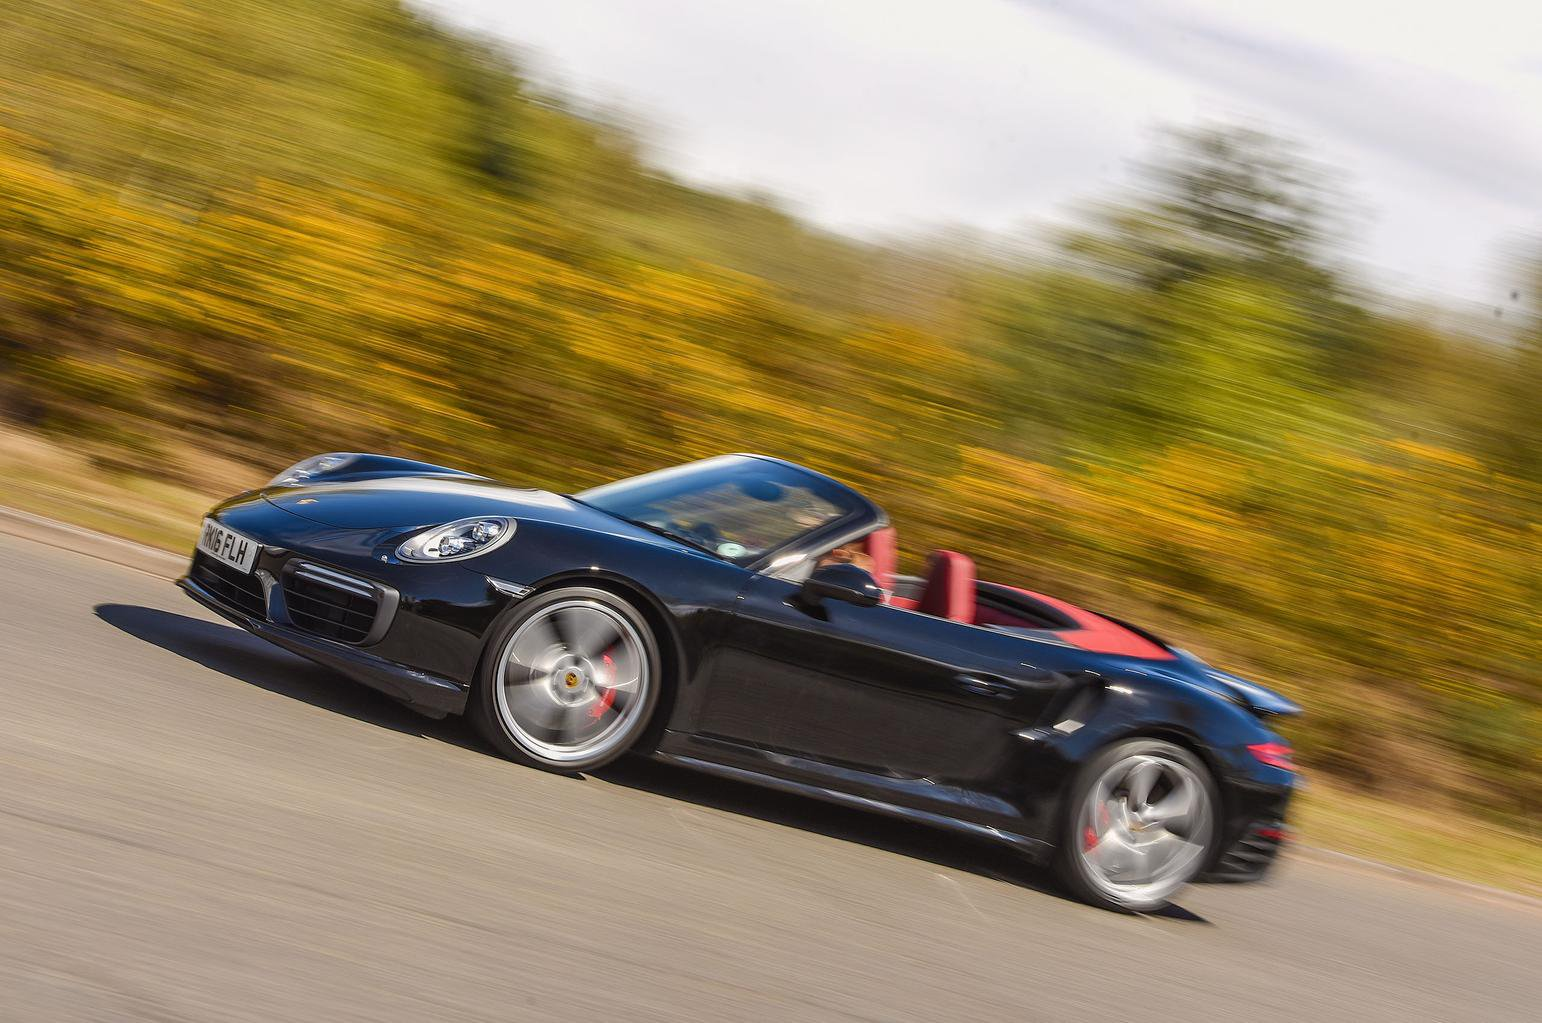 2016 Porsche 911 Turbo Cabriolet review